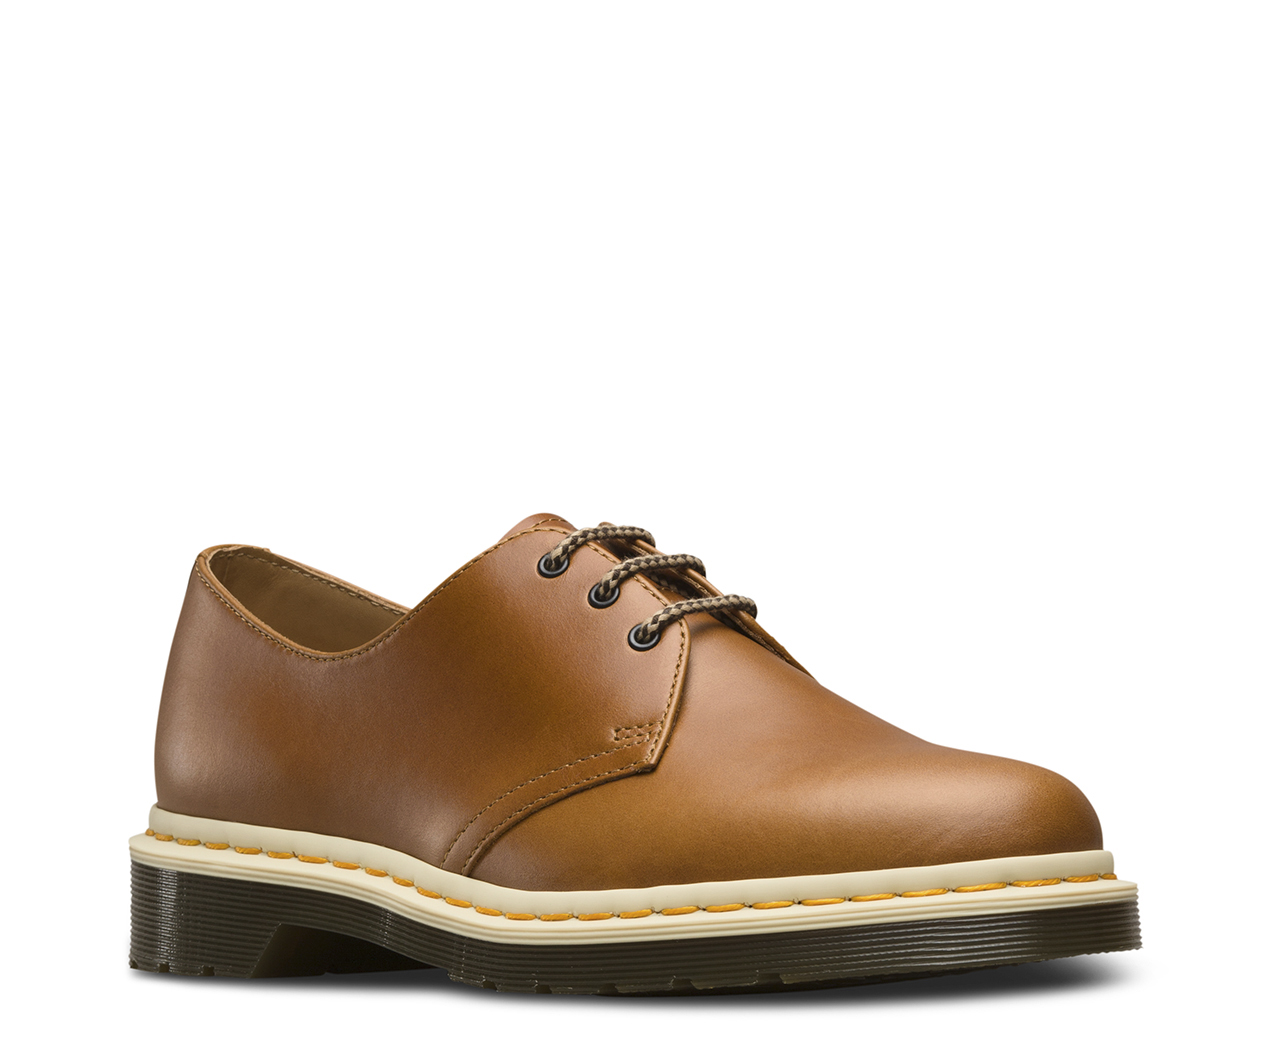 Mens Vegan Shoes Australia